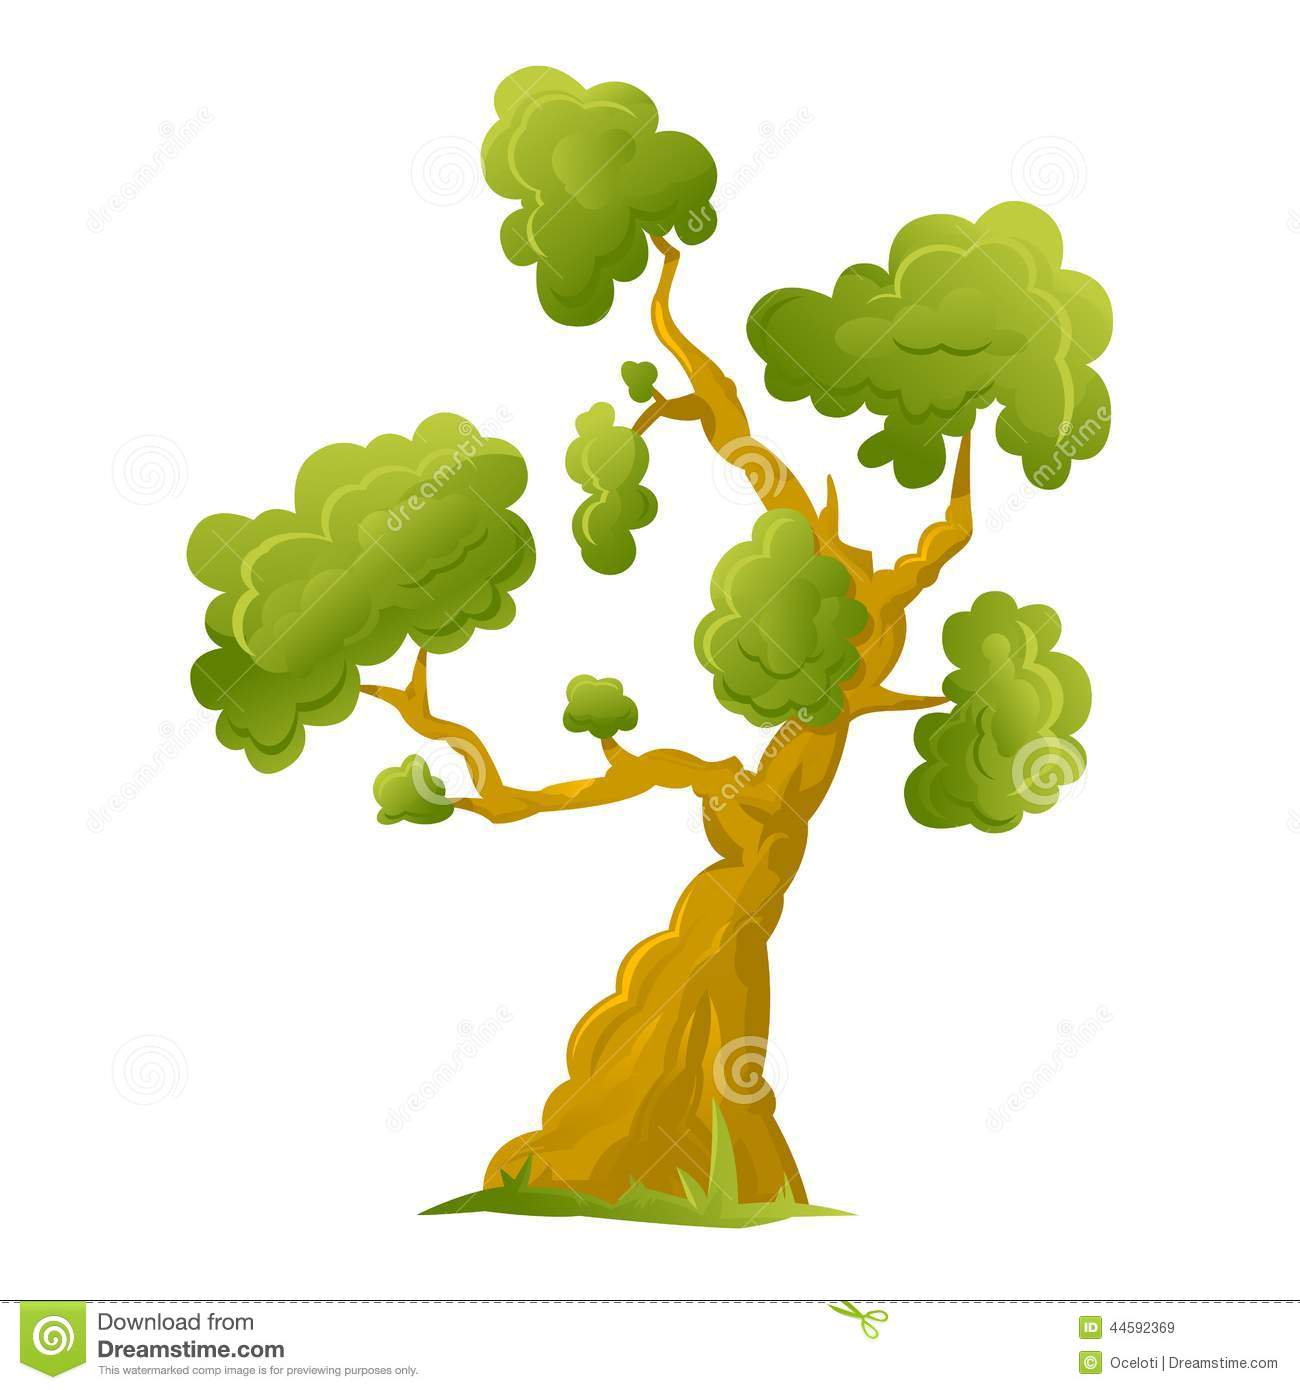 One Big Cartoon Tree Stock Vector Illustration Of Tree 44592369 Check our collection of cartoon tree with branches, search and use these free images for powerpoint presentation, reports, websites, pdf, graphic design or any other project you are working on now. dreamstime com